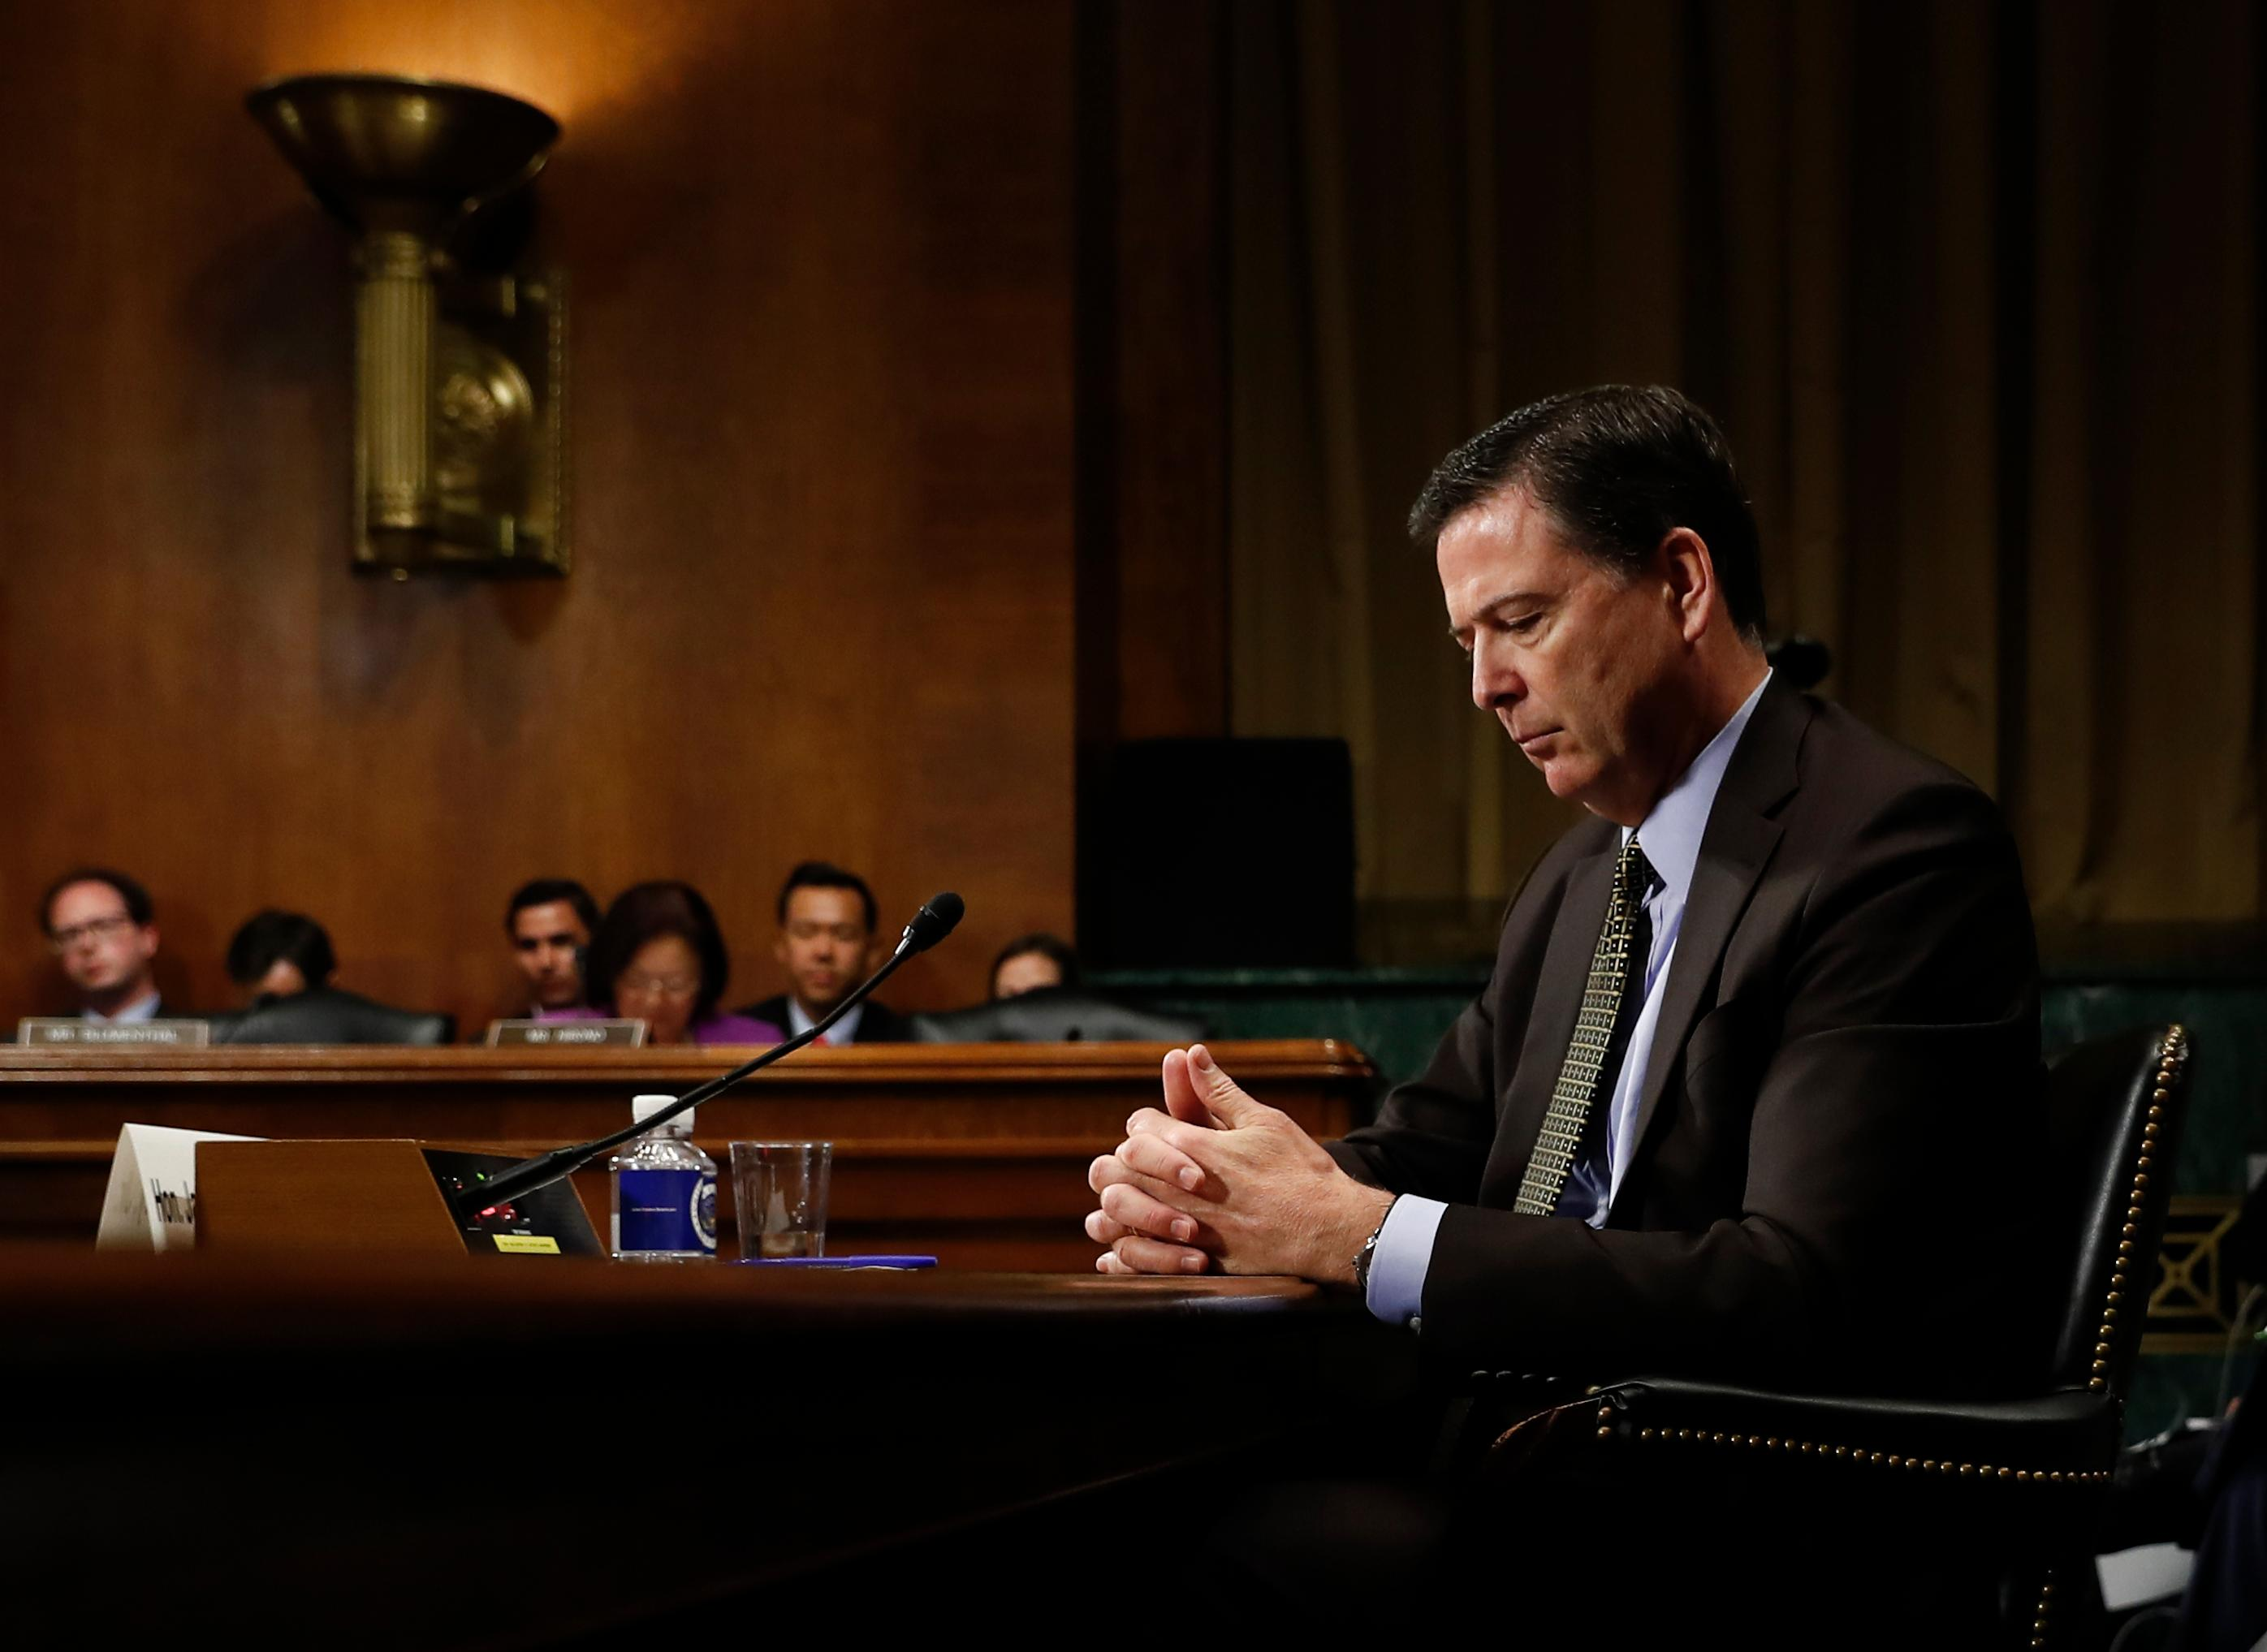 In this Wednesday, May 3, 2017, photo then-FBI Director James Comey pauses as he testifies on Capitol Hill in Washington, before a Senate Judiciary Committee hearing. President Donald Trump abruptly fired Comey on May 9, ousting the nation's top law enforcement official in the midst of an investigation into whether Trump's campaign had ties to Russia's election meddling.(AP Photo/Carolyn Kaster)